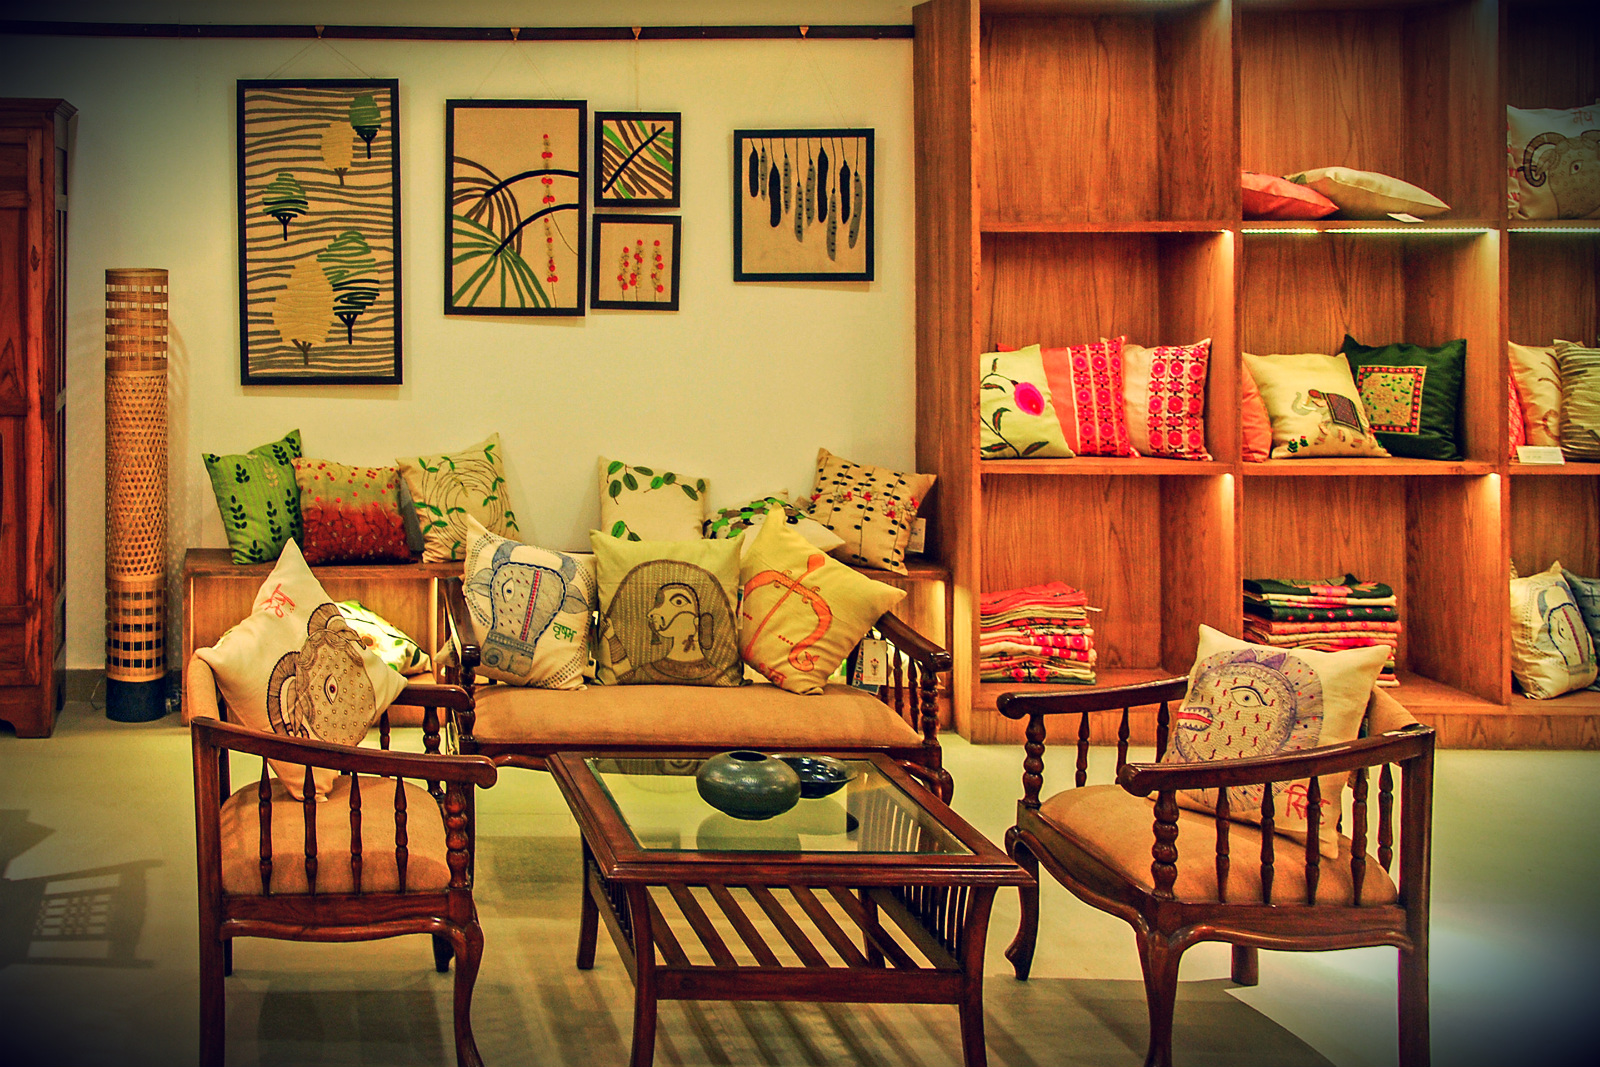 Indian august store interior 1 my decorative for House interior decoration items